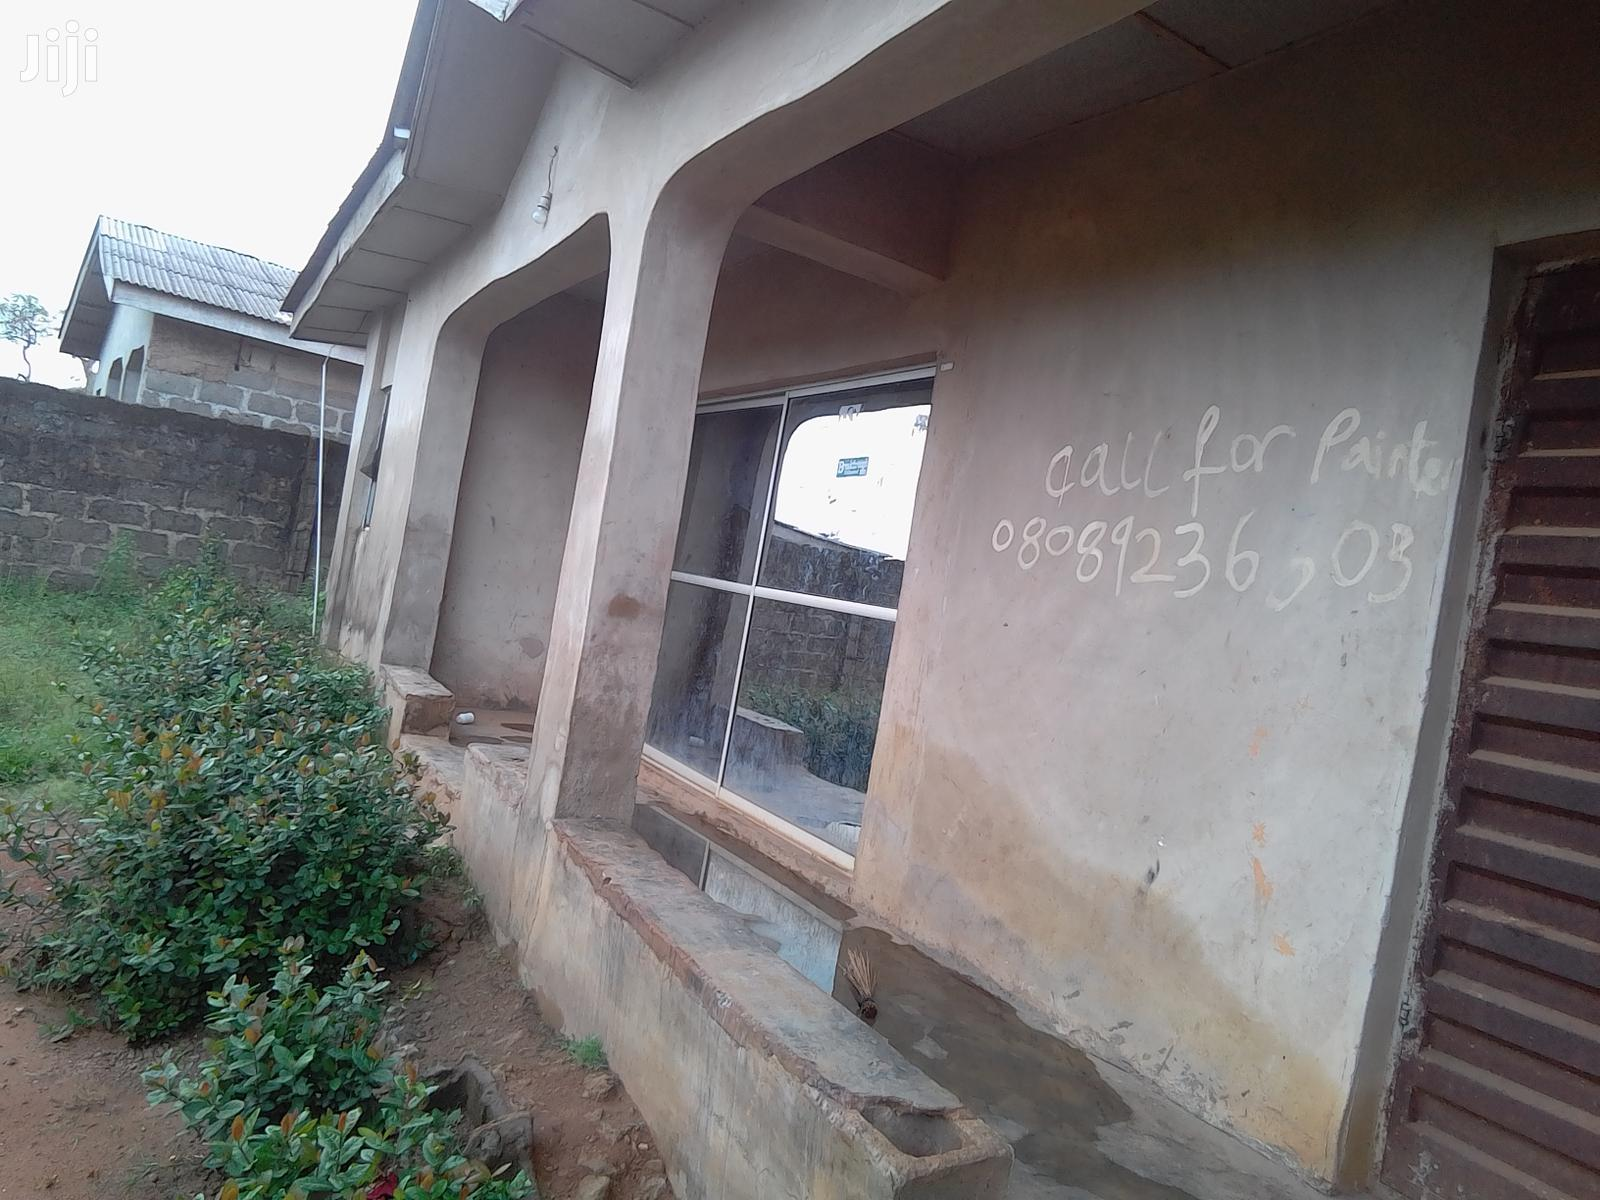 Standard 4 Bedroom Bungalow At Olorunshola Ayobo For Sale. | Houses & Apartments For Sale for sale in Ipaja, Lagos State, Nigeria